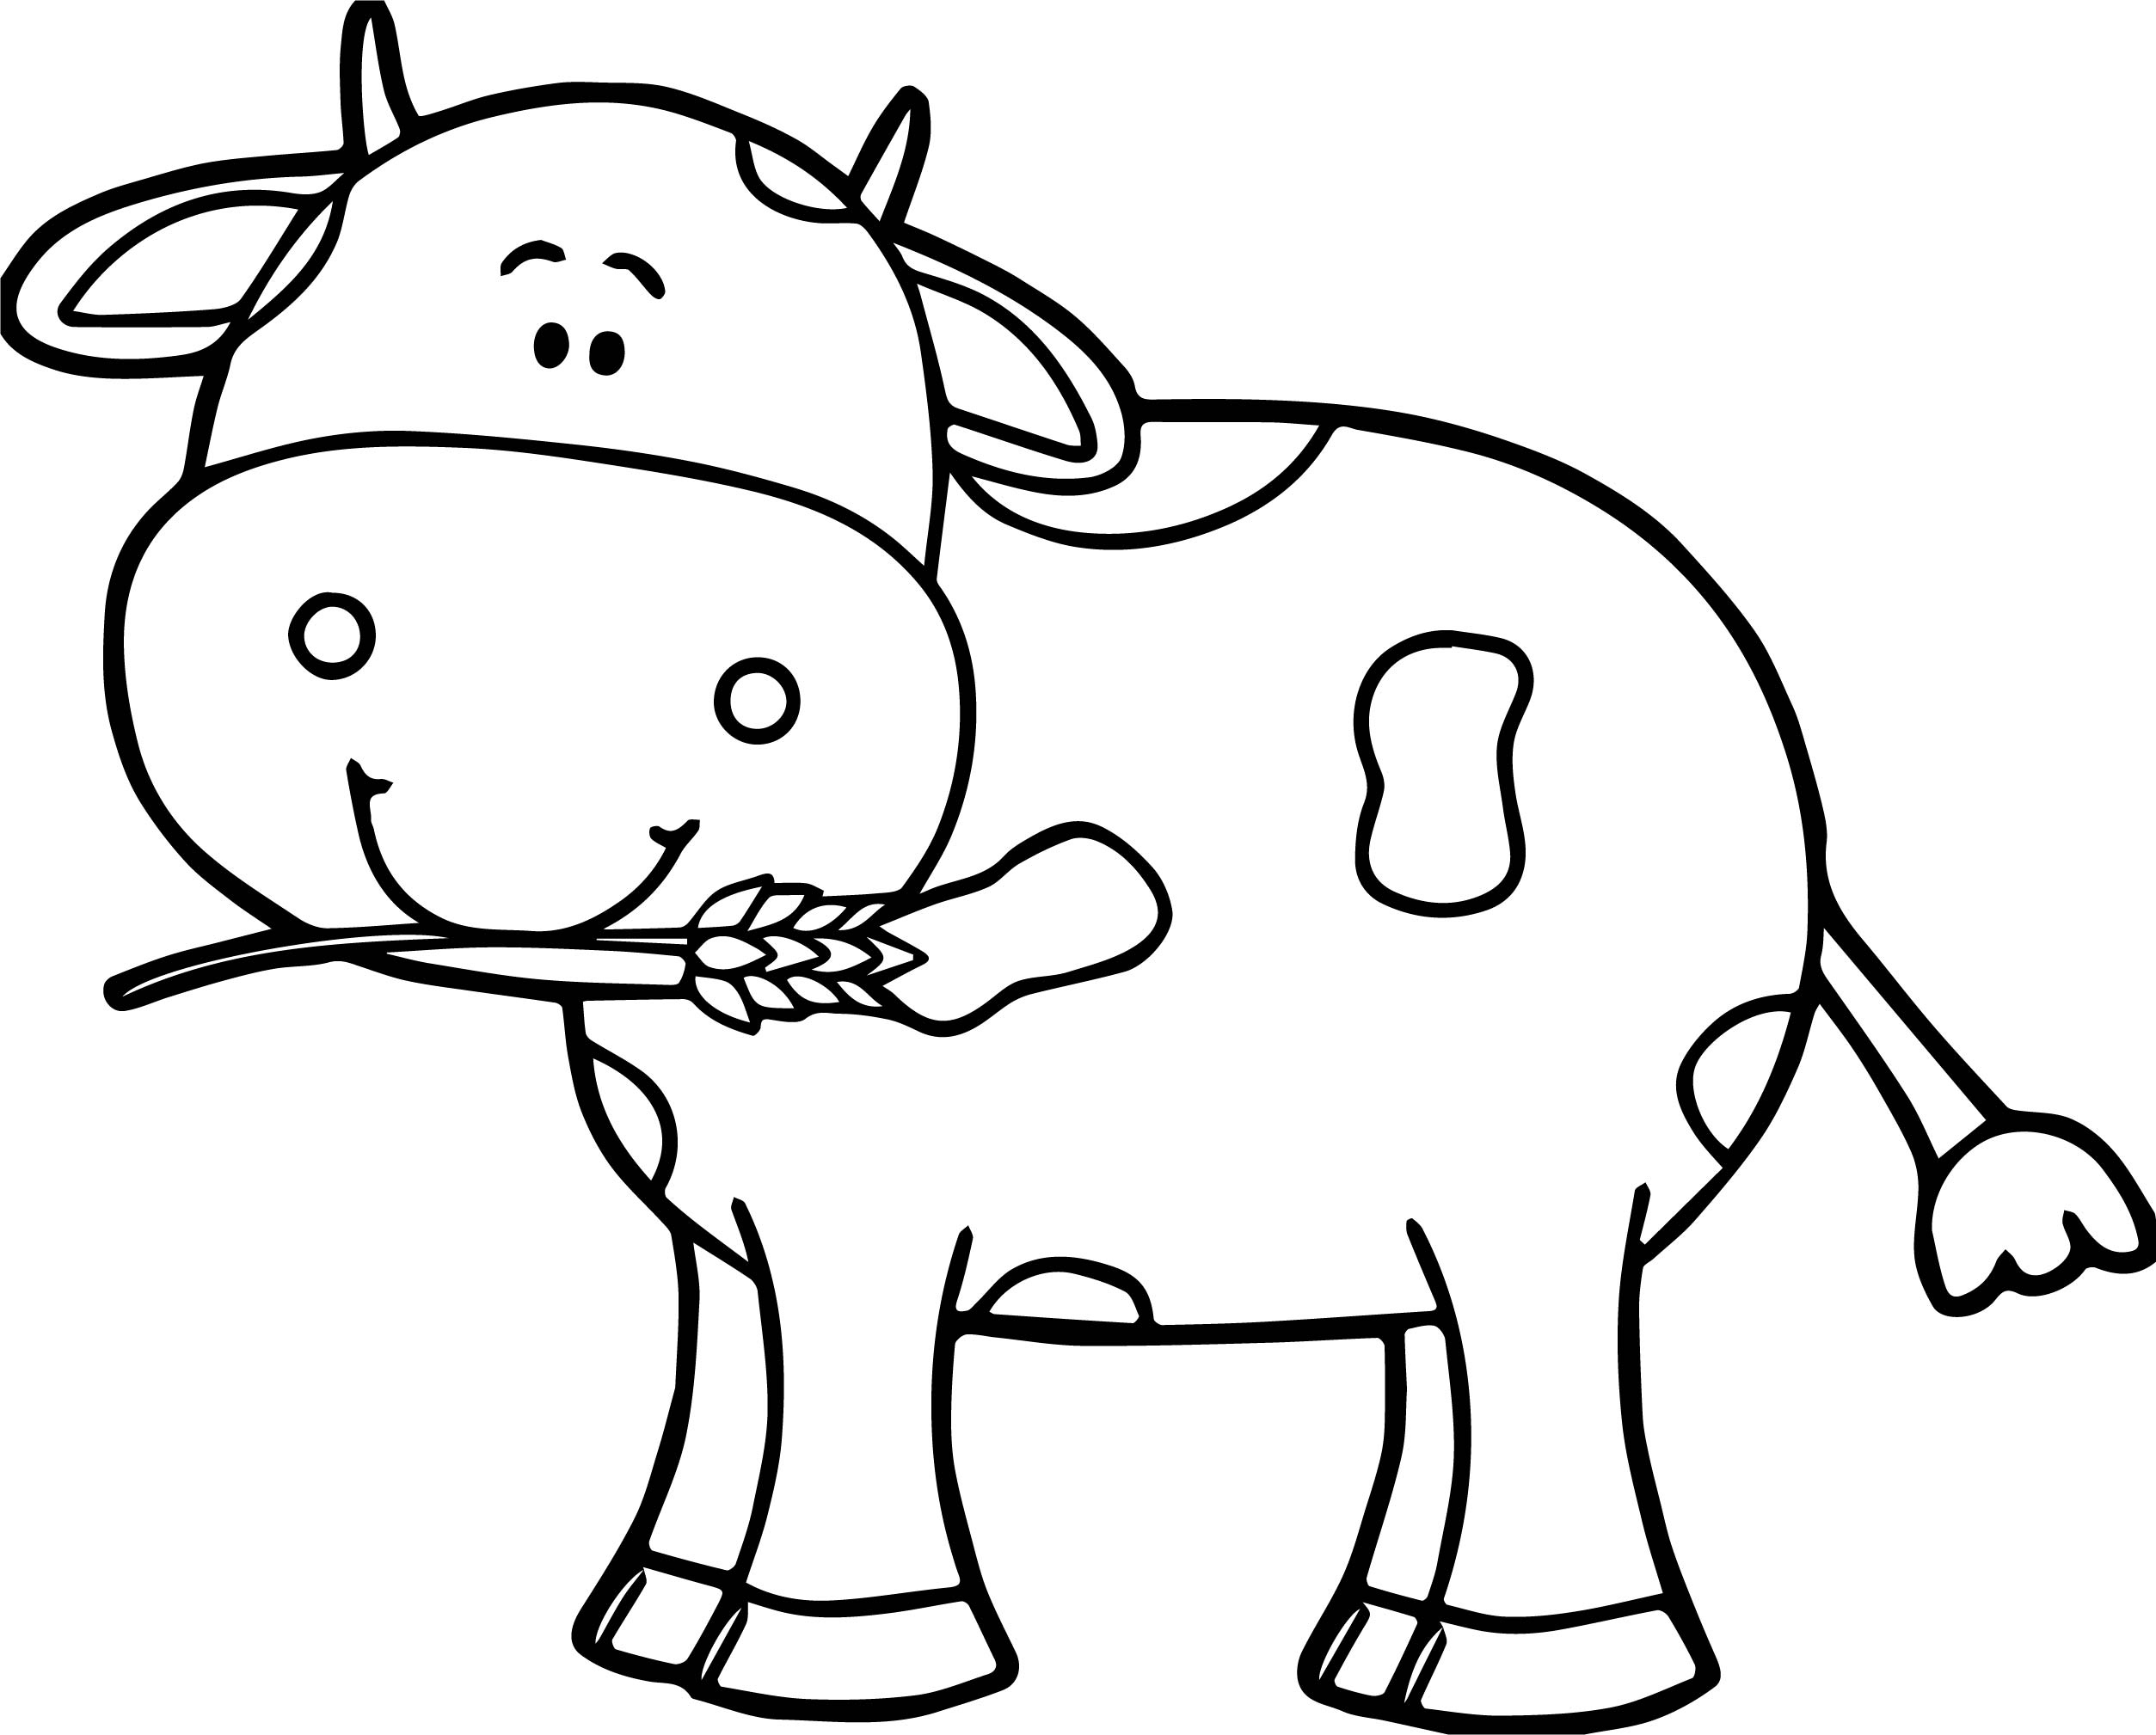 Cow Coloring Pages For Adults at GetDrawings.com | Free for ...